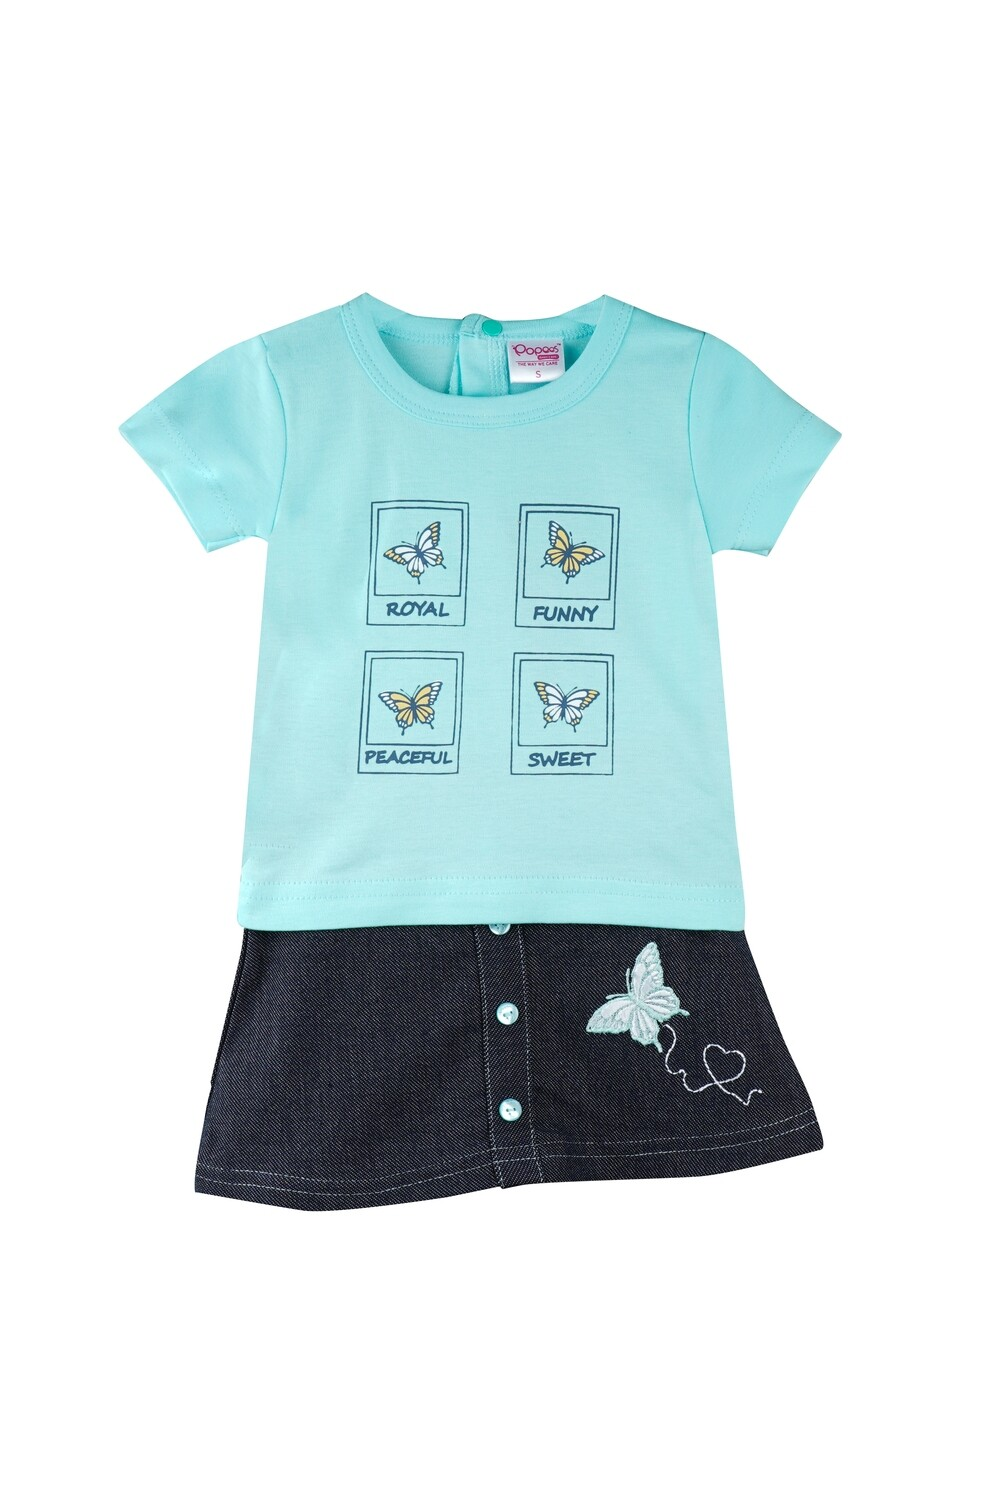 Story Green Half Sleeves Round Neck T-Shirt with Butterfly Embroidered Skirt for Girls